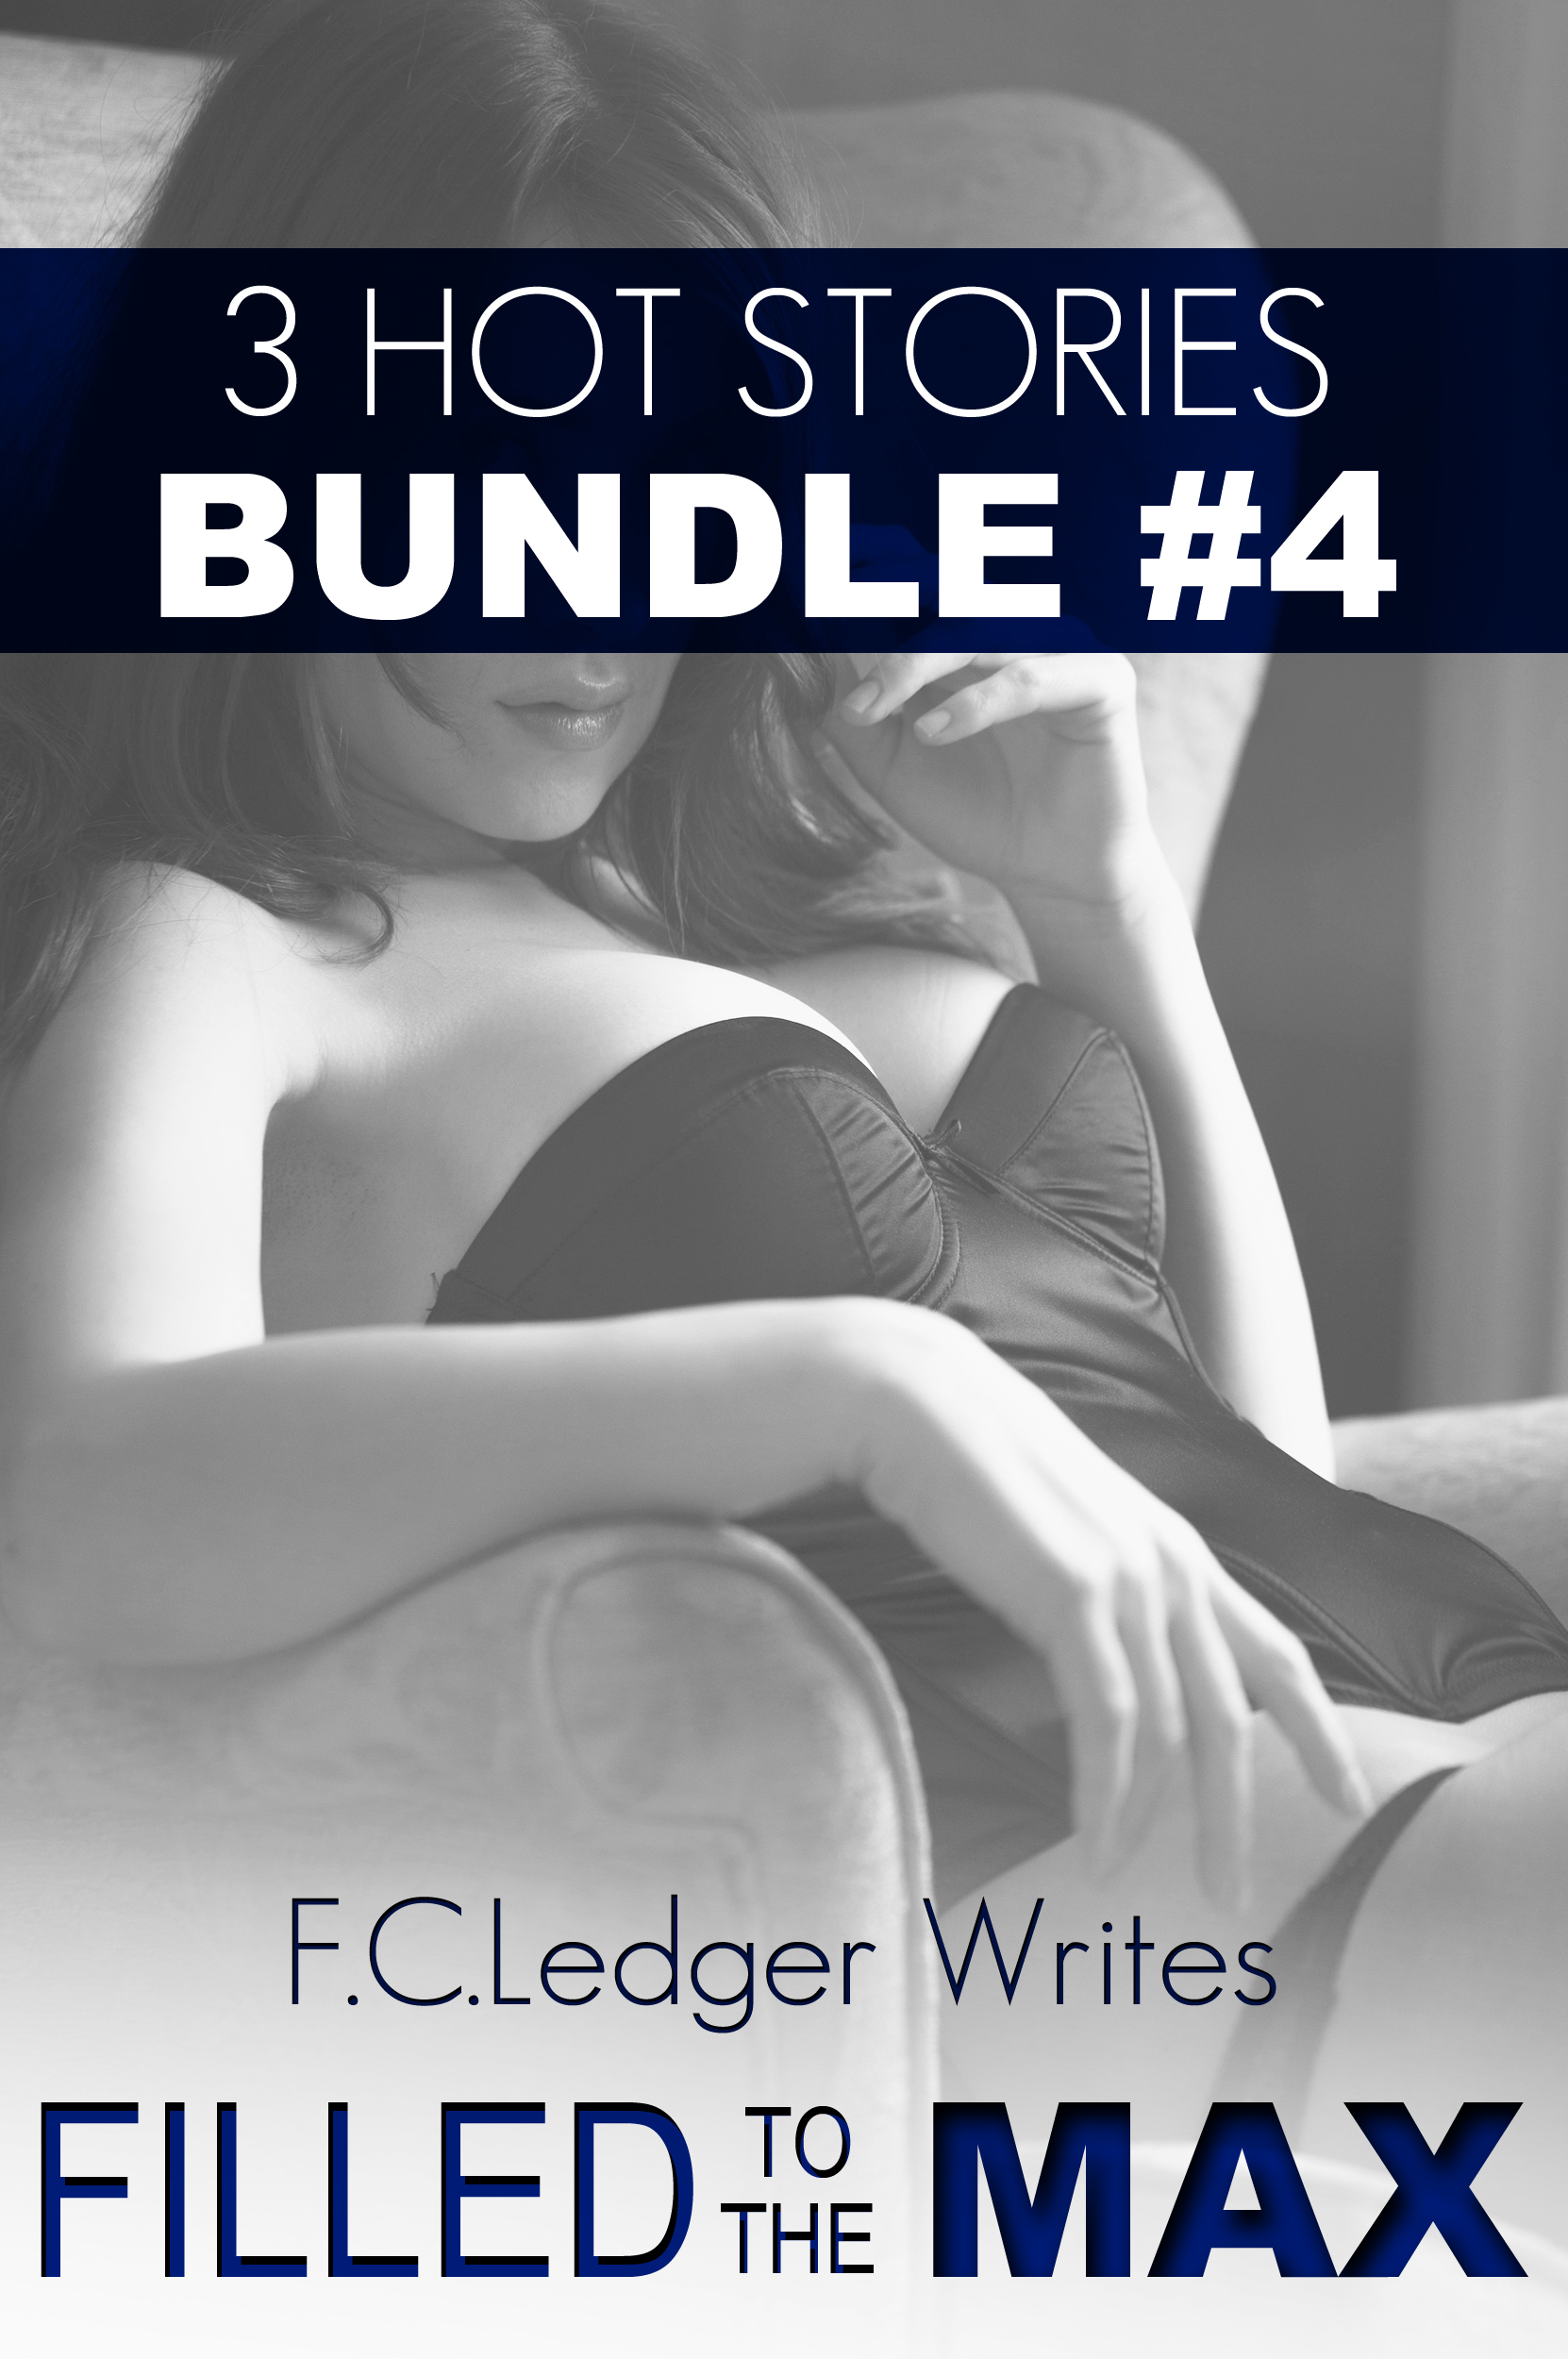 3 Hot Stories: Filled To The MAX Bundle #4 F.C. Ledger